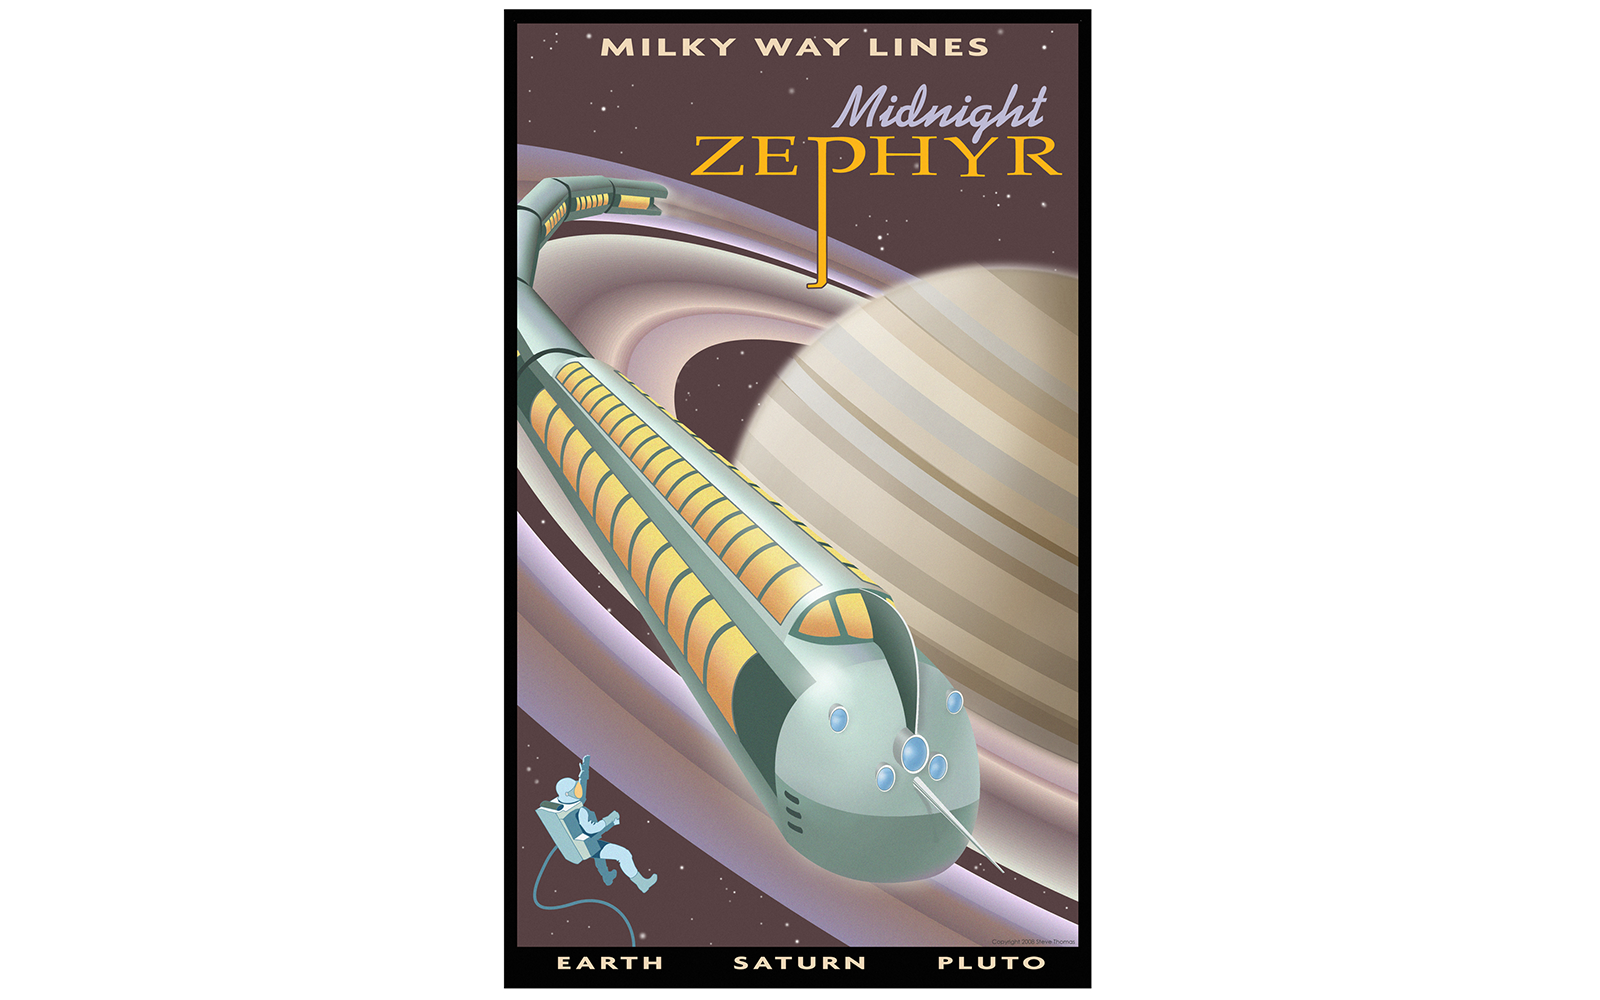 Vintage Space Travel Posters: Trade the Subway for the Milky Way